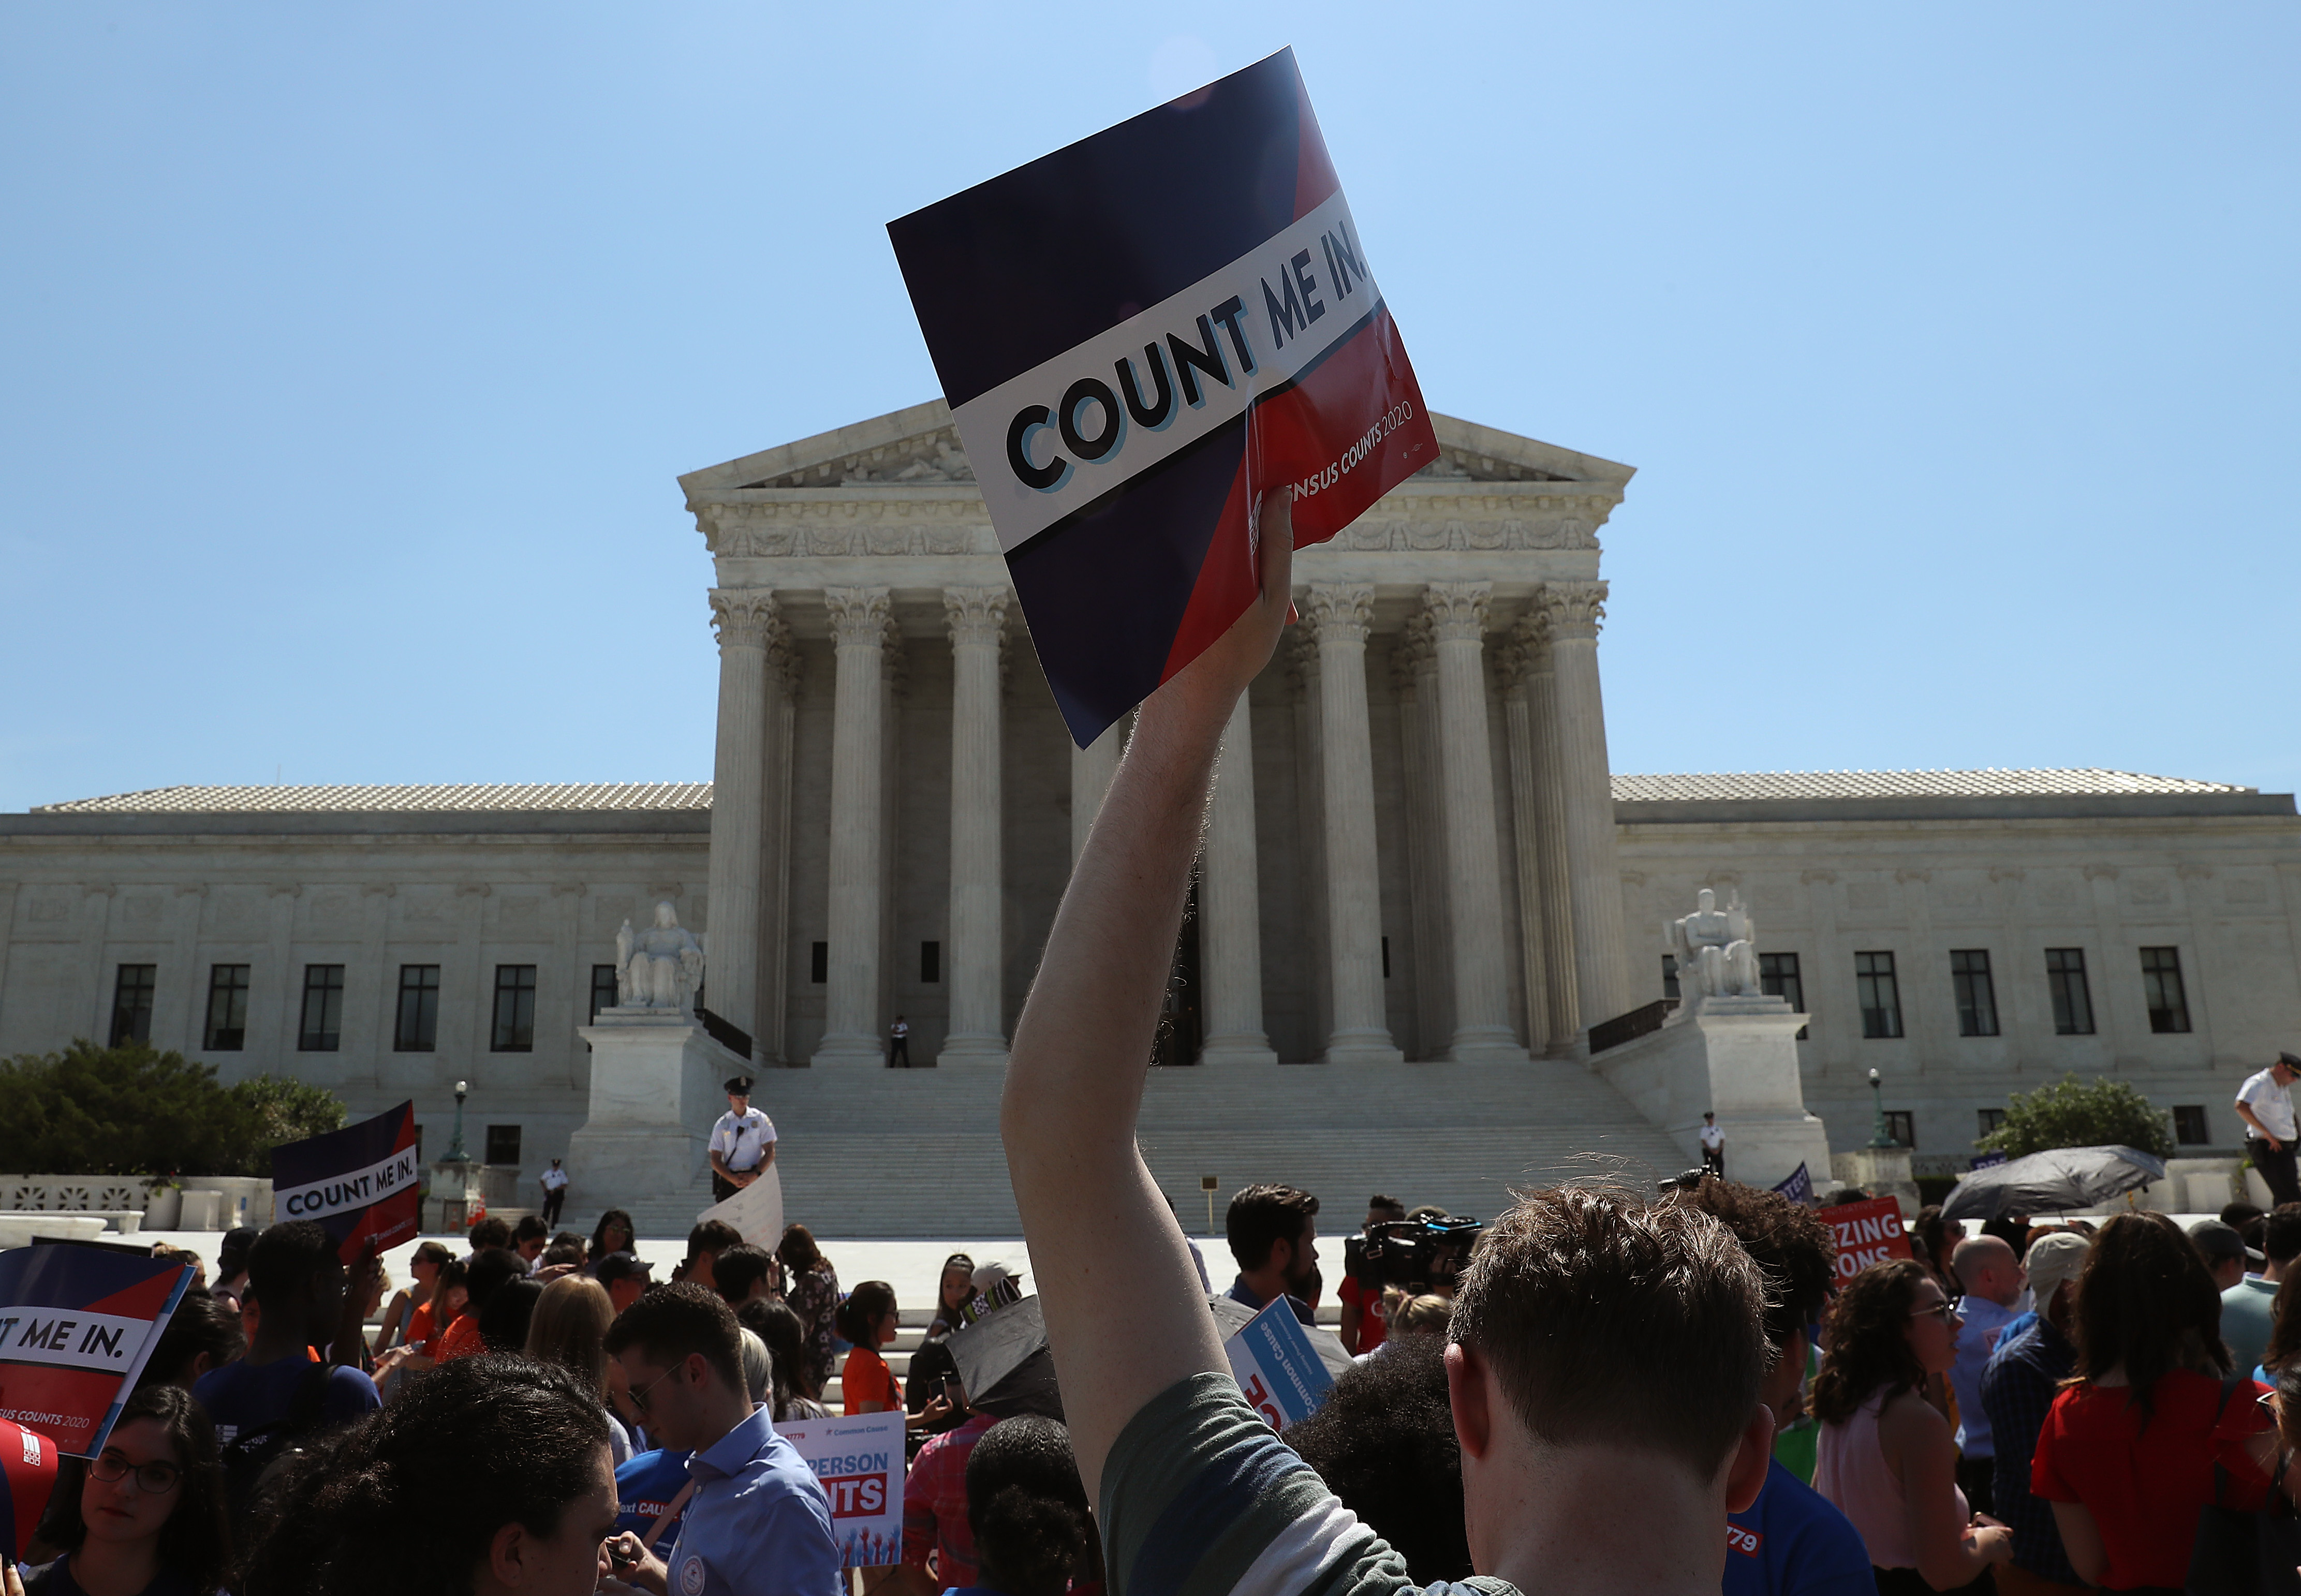 Demonstrators gather in front of the Supreme Court after the census decision was handed down on June 27, 2019. (Mark Wilson/Getty Images)